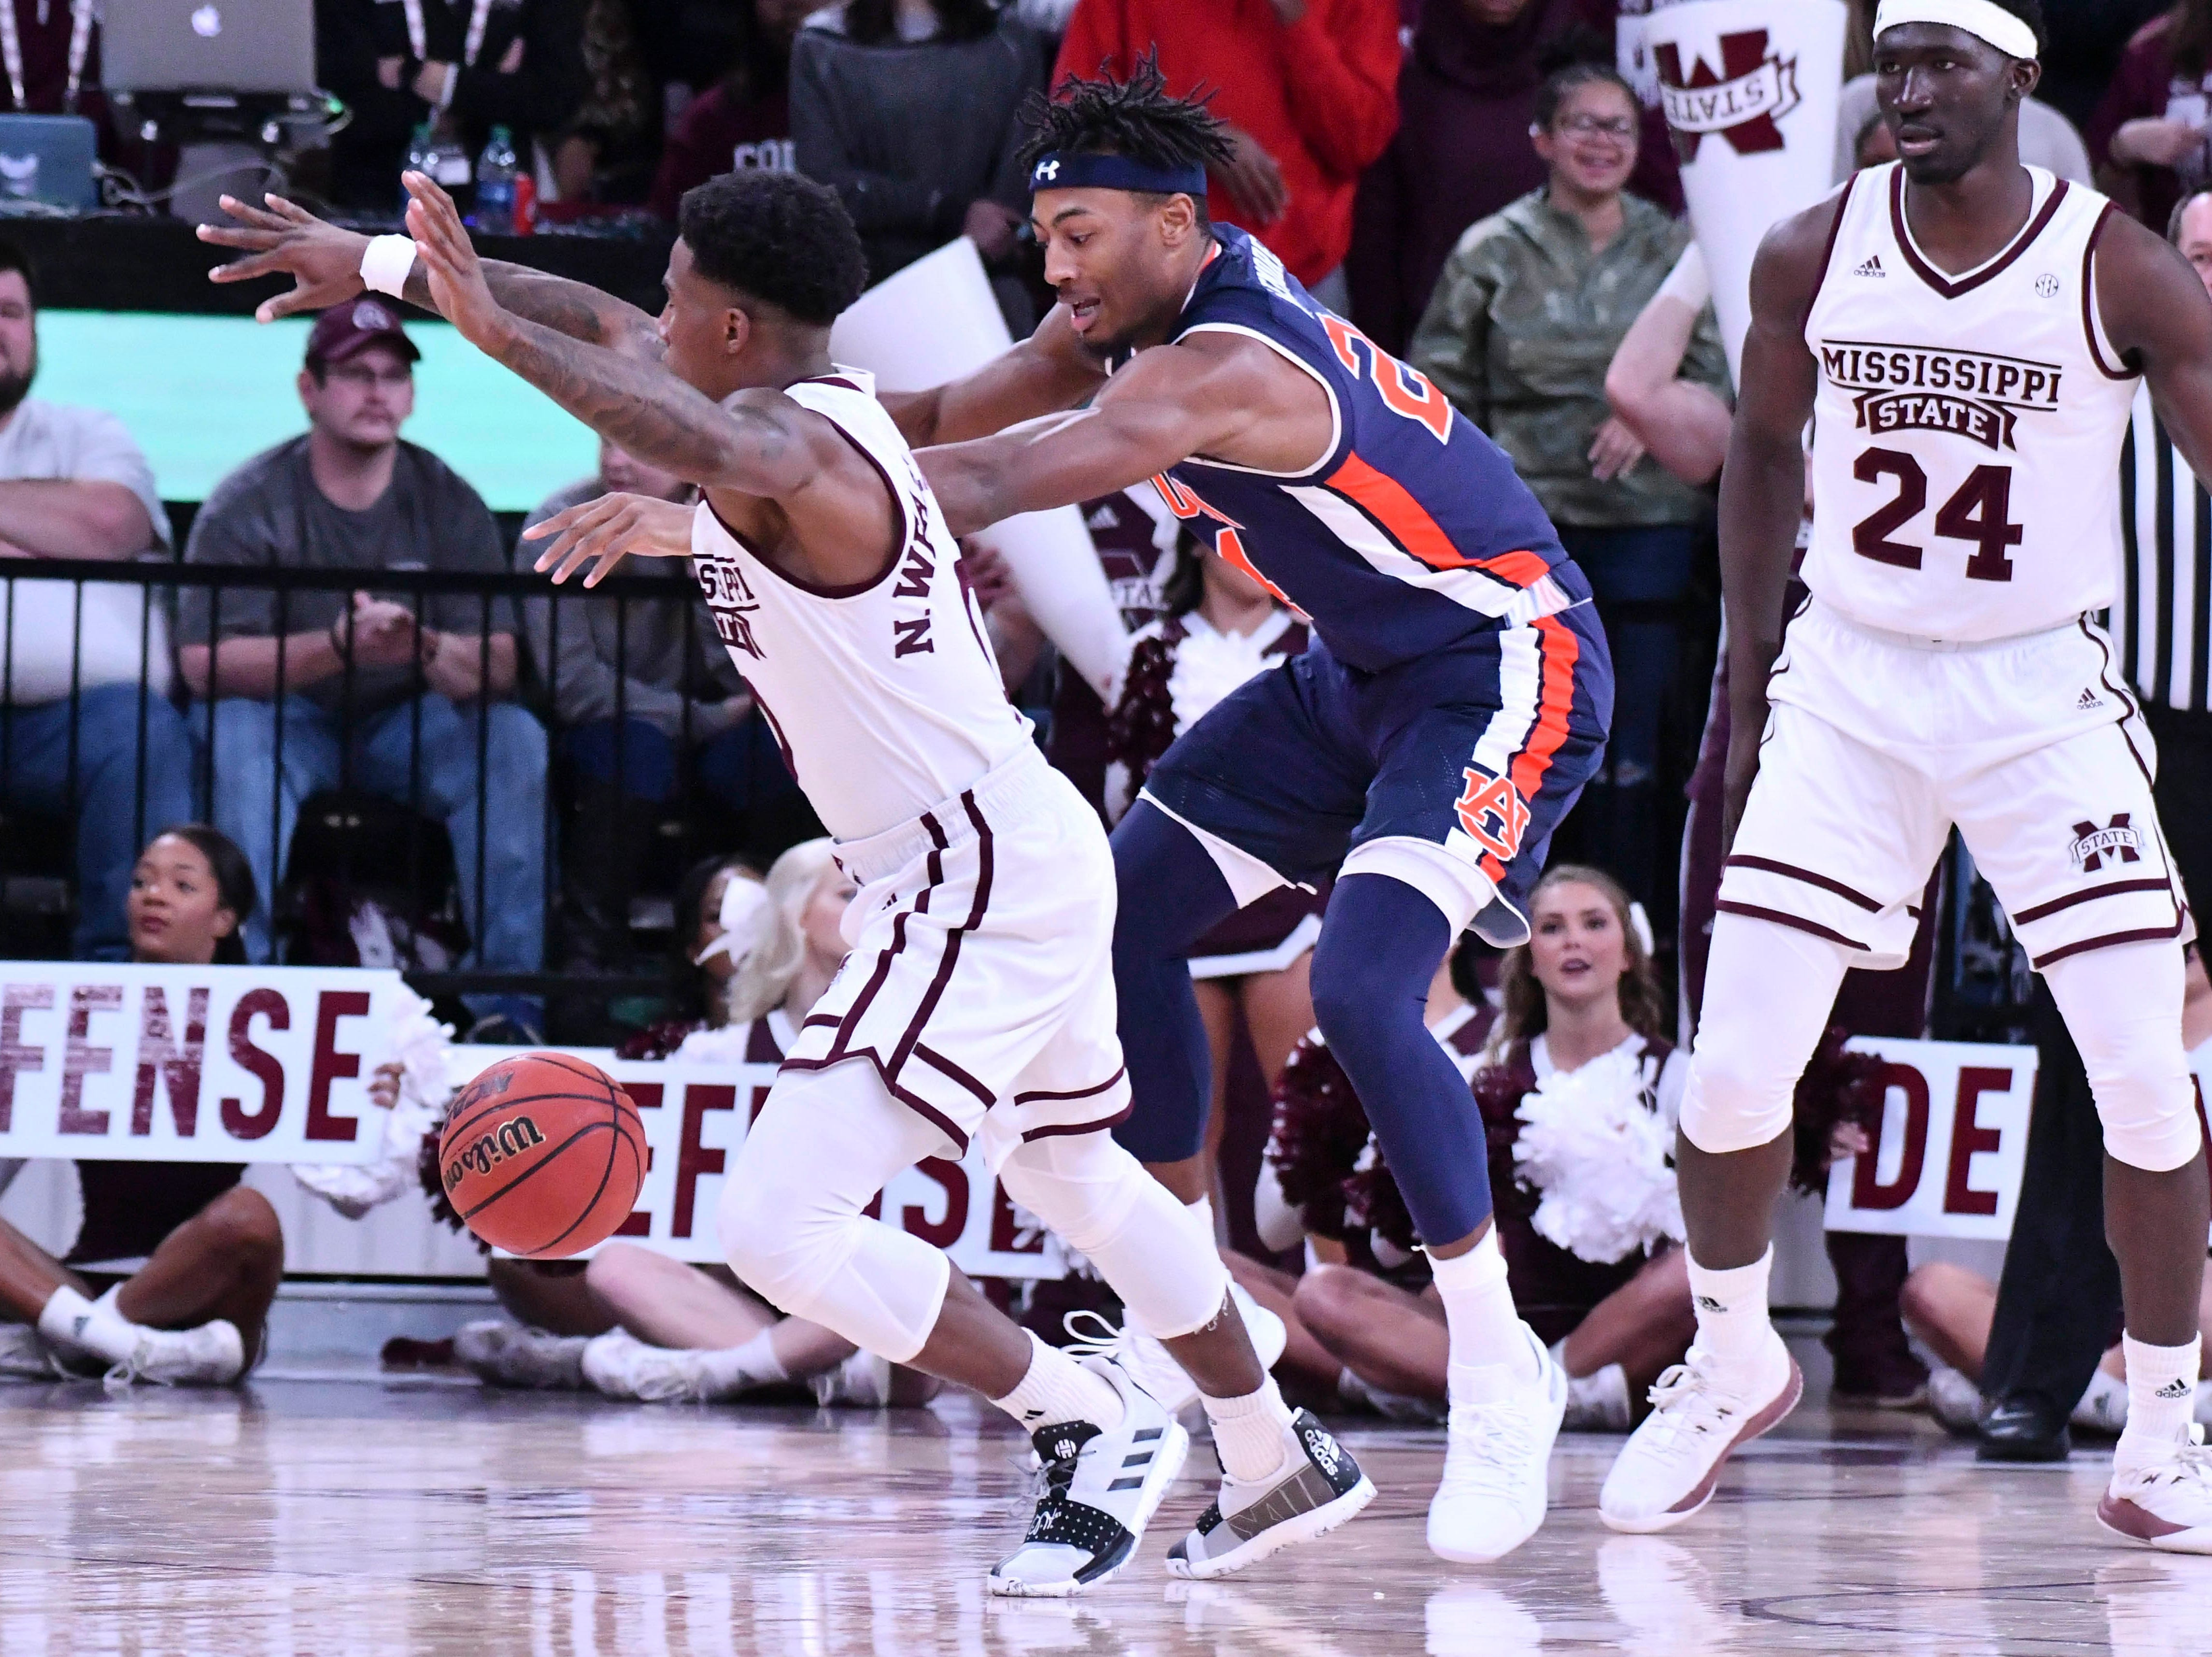 Jan 26, 2019; Starkville, MS, USA; Mississippi State Bulldogs guard Nick Weatherspoon (0) and Auburn Tigers forward Anfernee McLemore (24) battle for a loose ball during the first half at Humphrey Coliseum. Mandatory Credit: Matt Bush-USA TODAY Sports